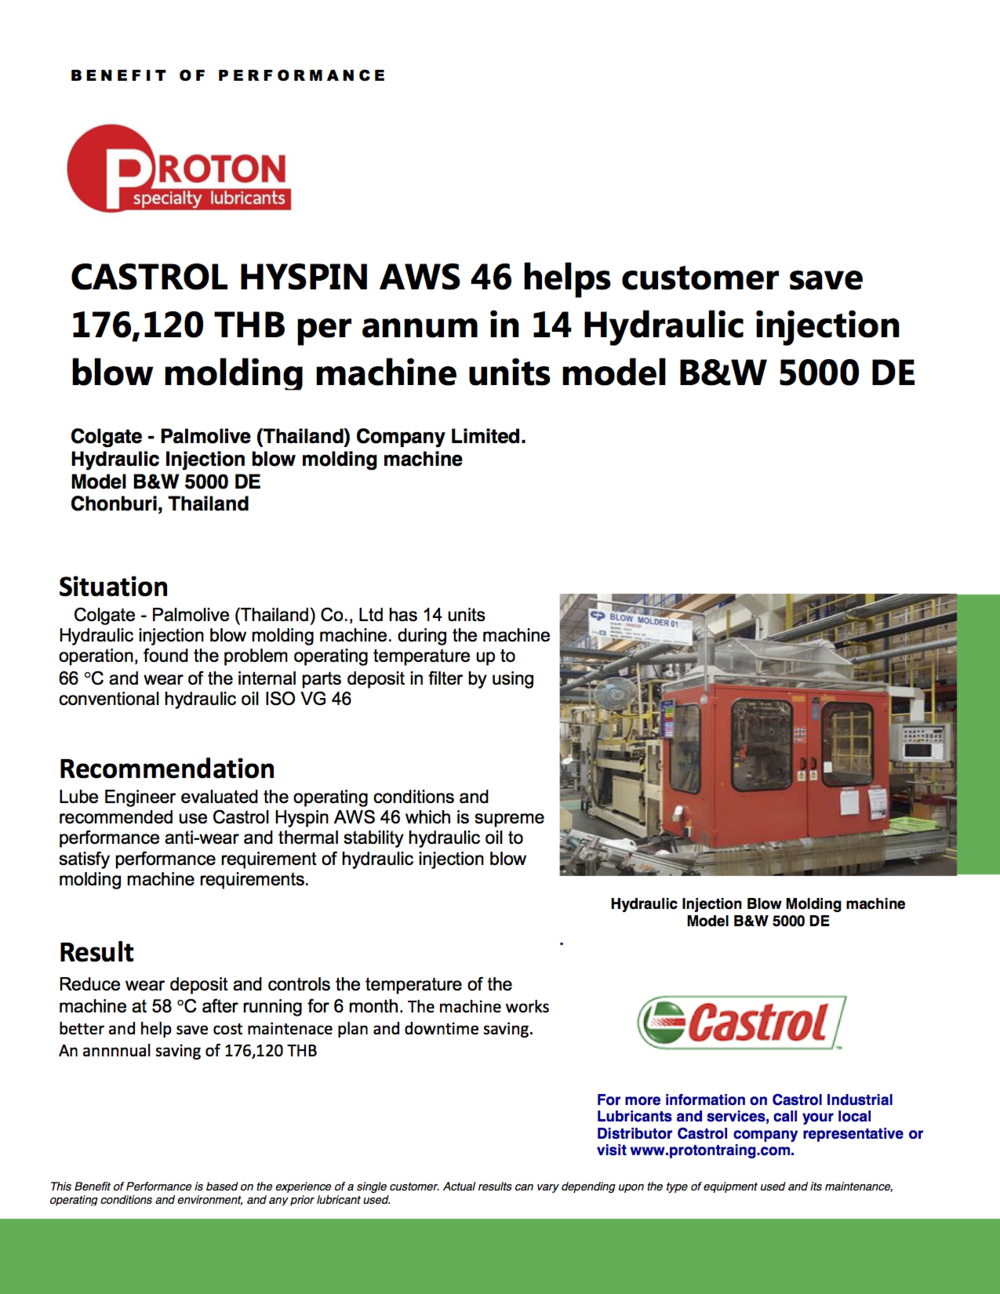 BOP_Castrol_Hyspin AWS 46 (Colgate Palmolive).png